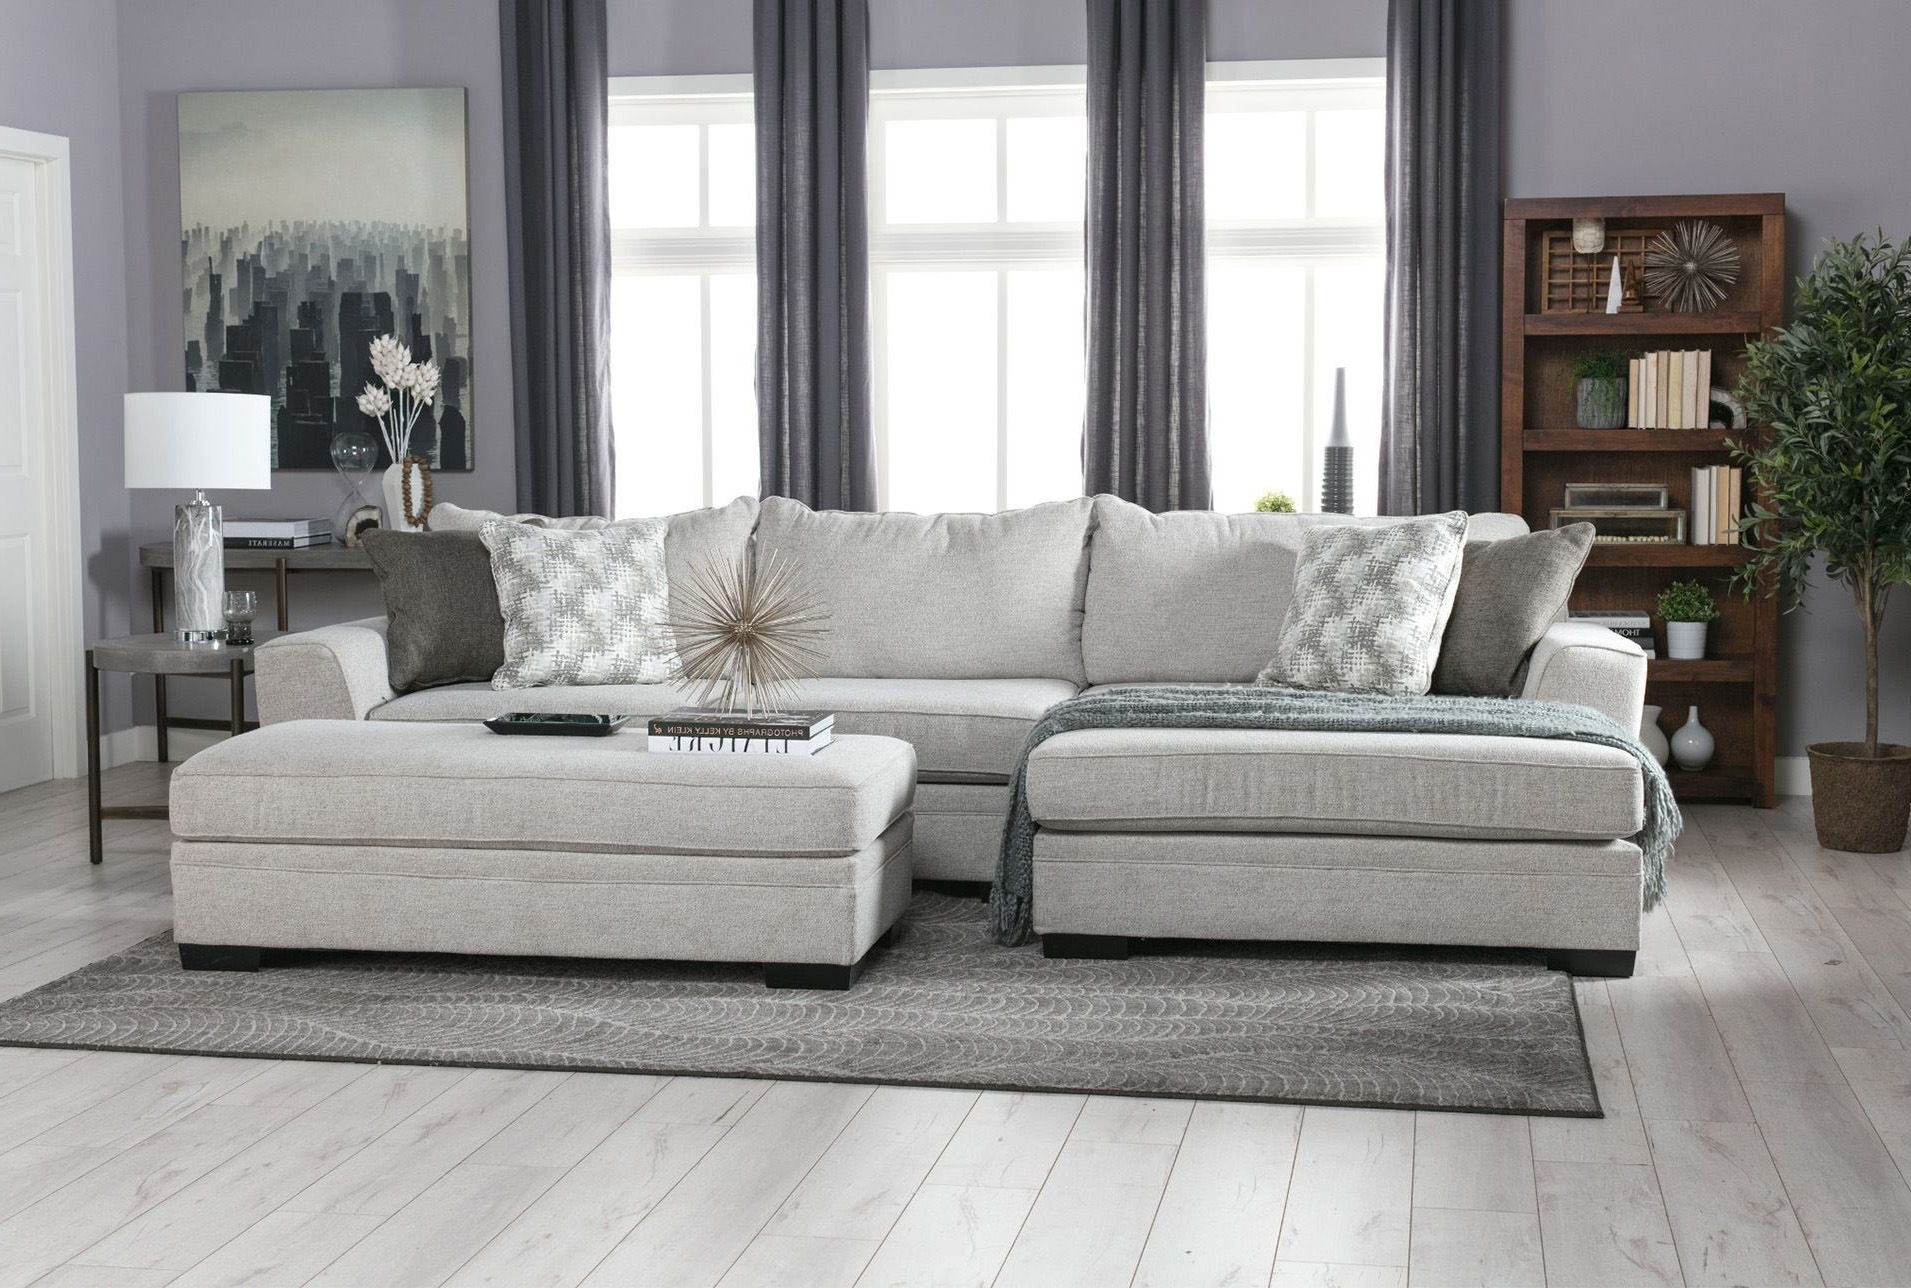 Delano 2 Piece Sectional W/raf Oversized Chaise | Living Room Ideas In Haven Blue Steel 3 Piece Sectionals (Image 9 of 25)